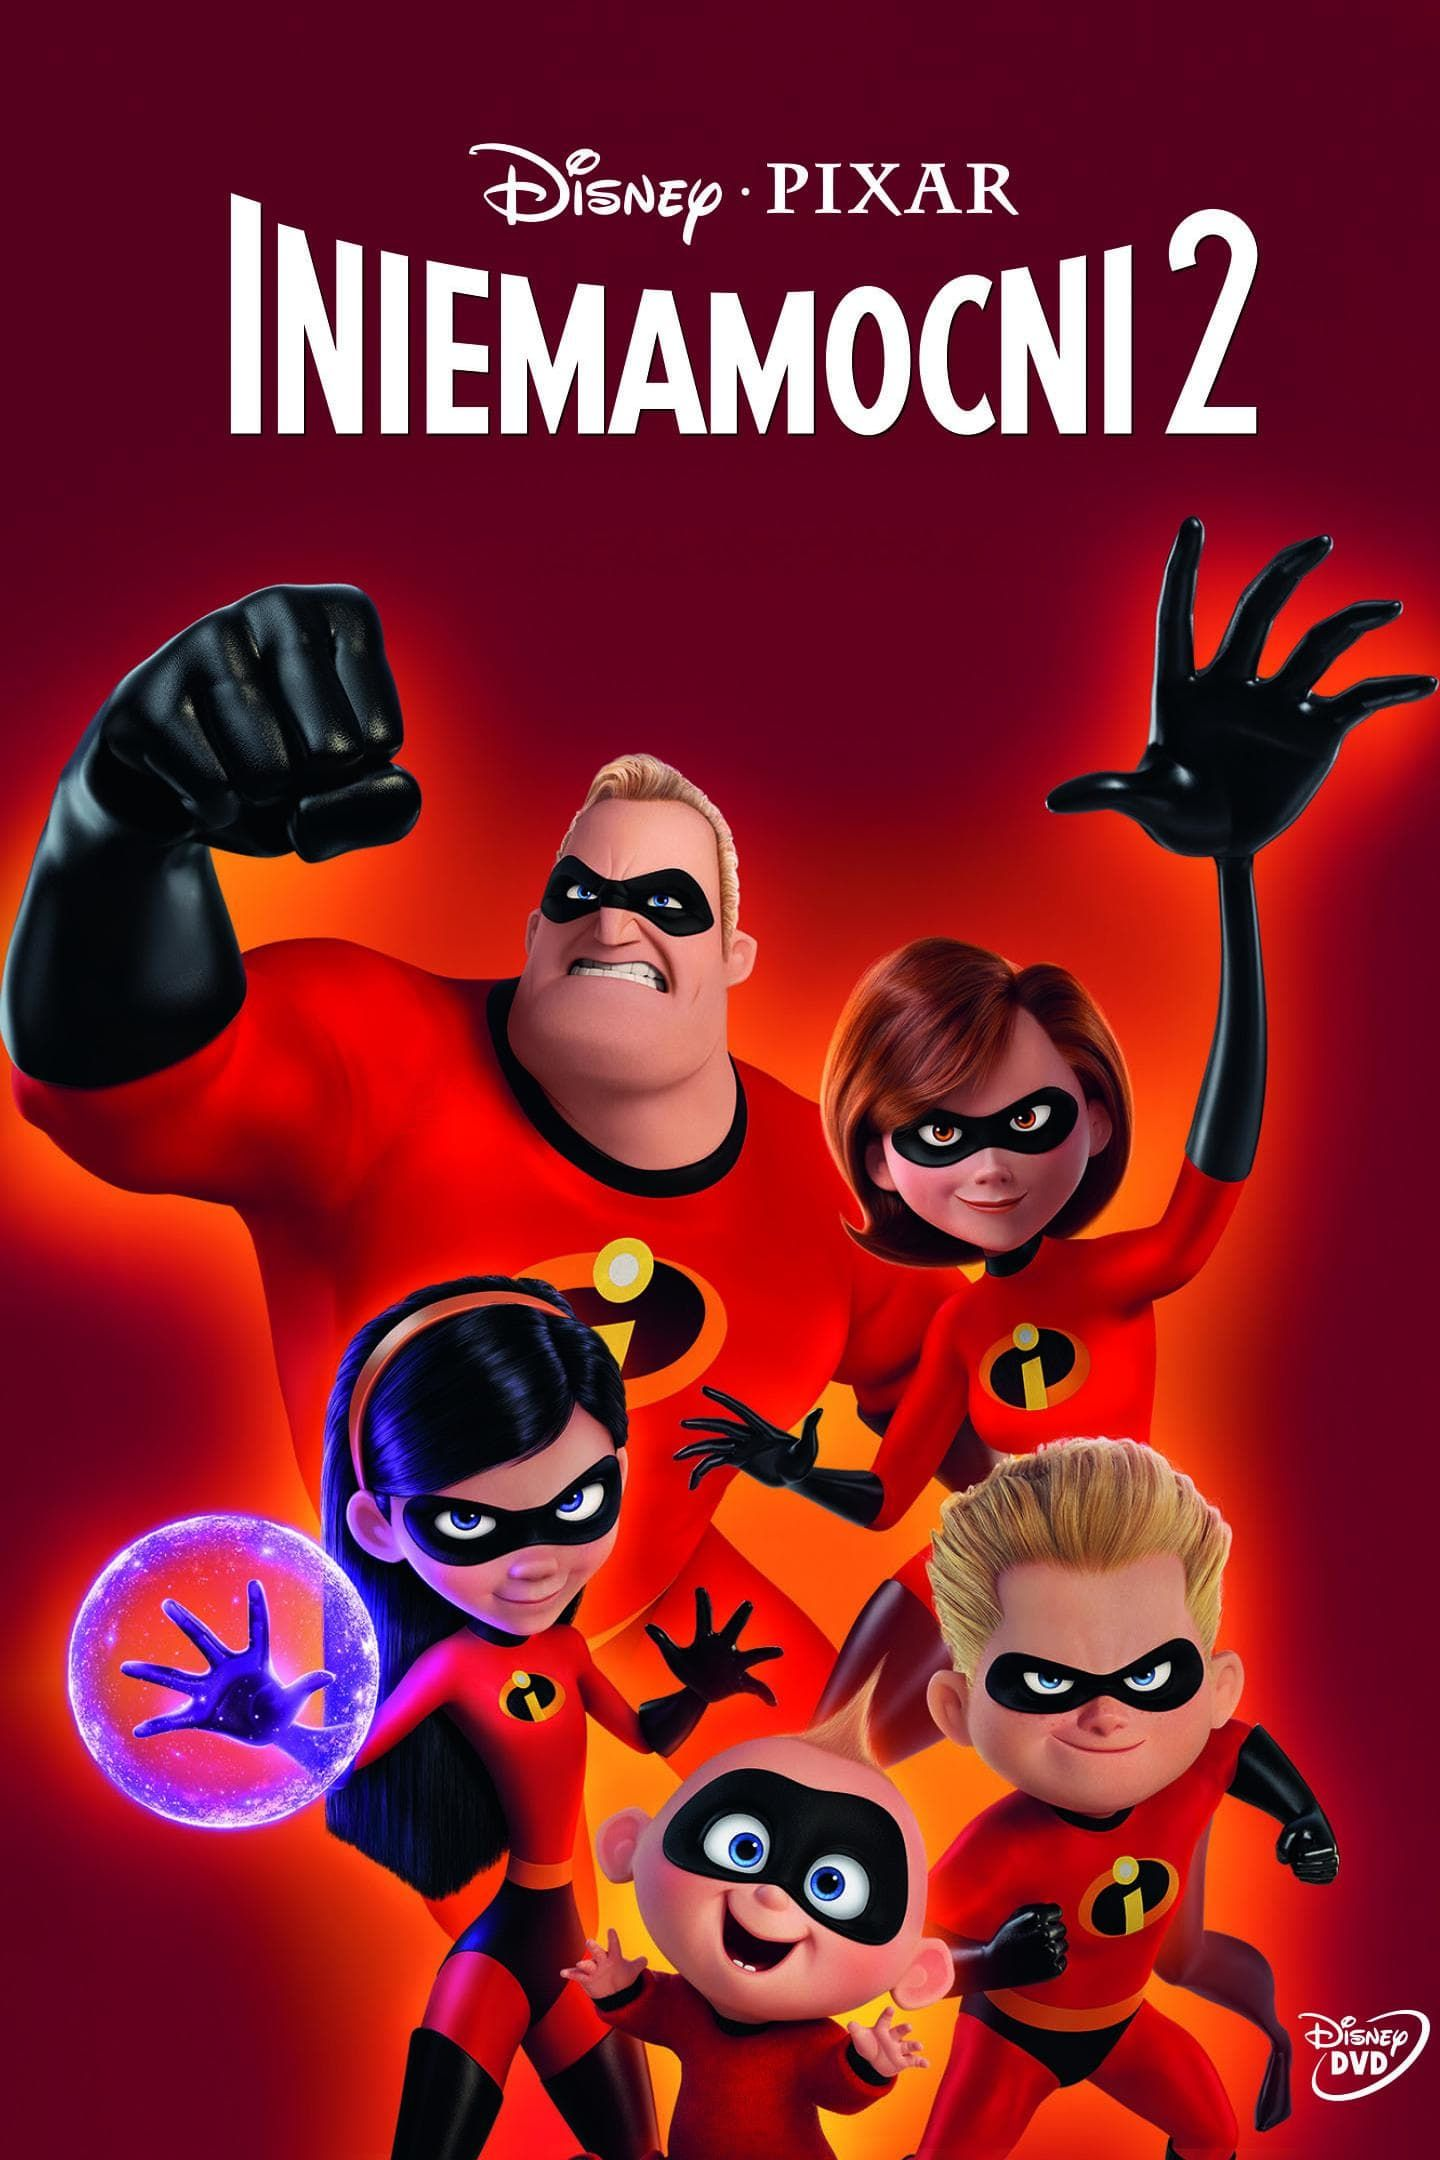 Ver Incredibles 2 2018 Pelicula Completa Online En Espanol Latino Subtitulado Incredibles2 Movie Fullmovie Streamingonli Disney Pixar Pixar Film Tv